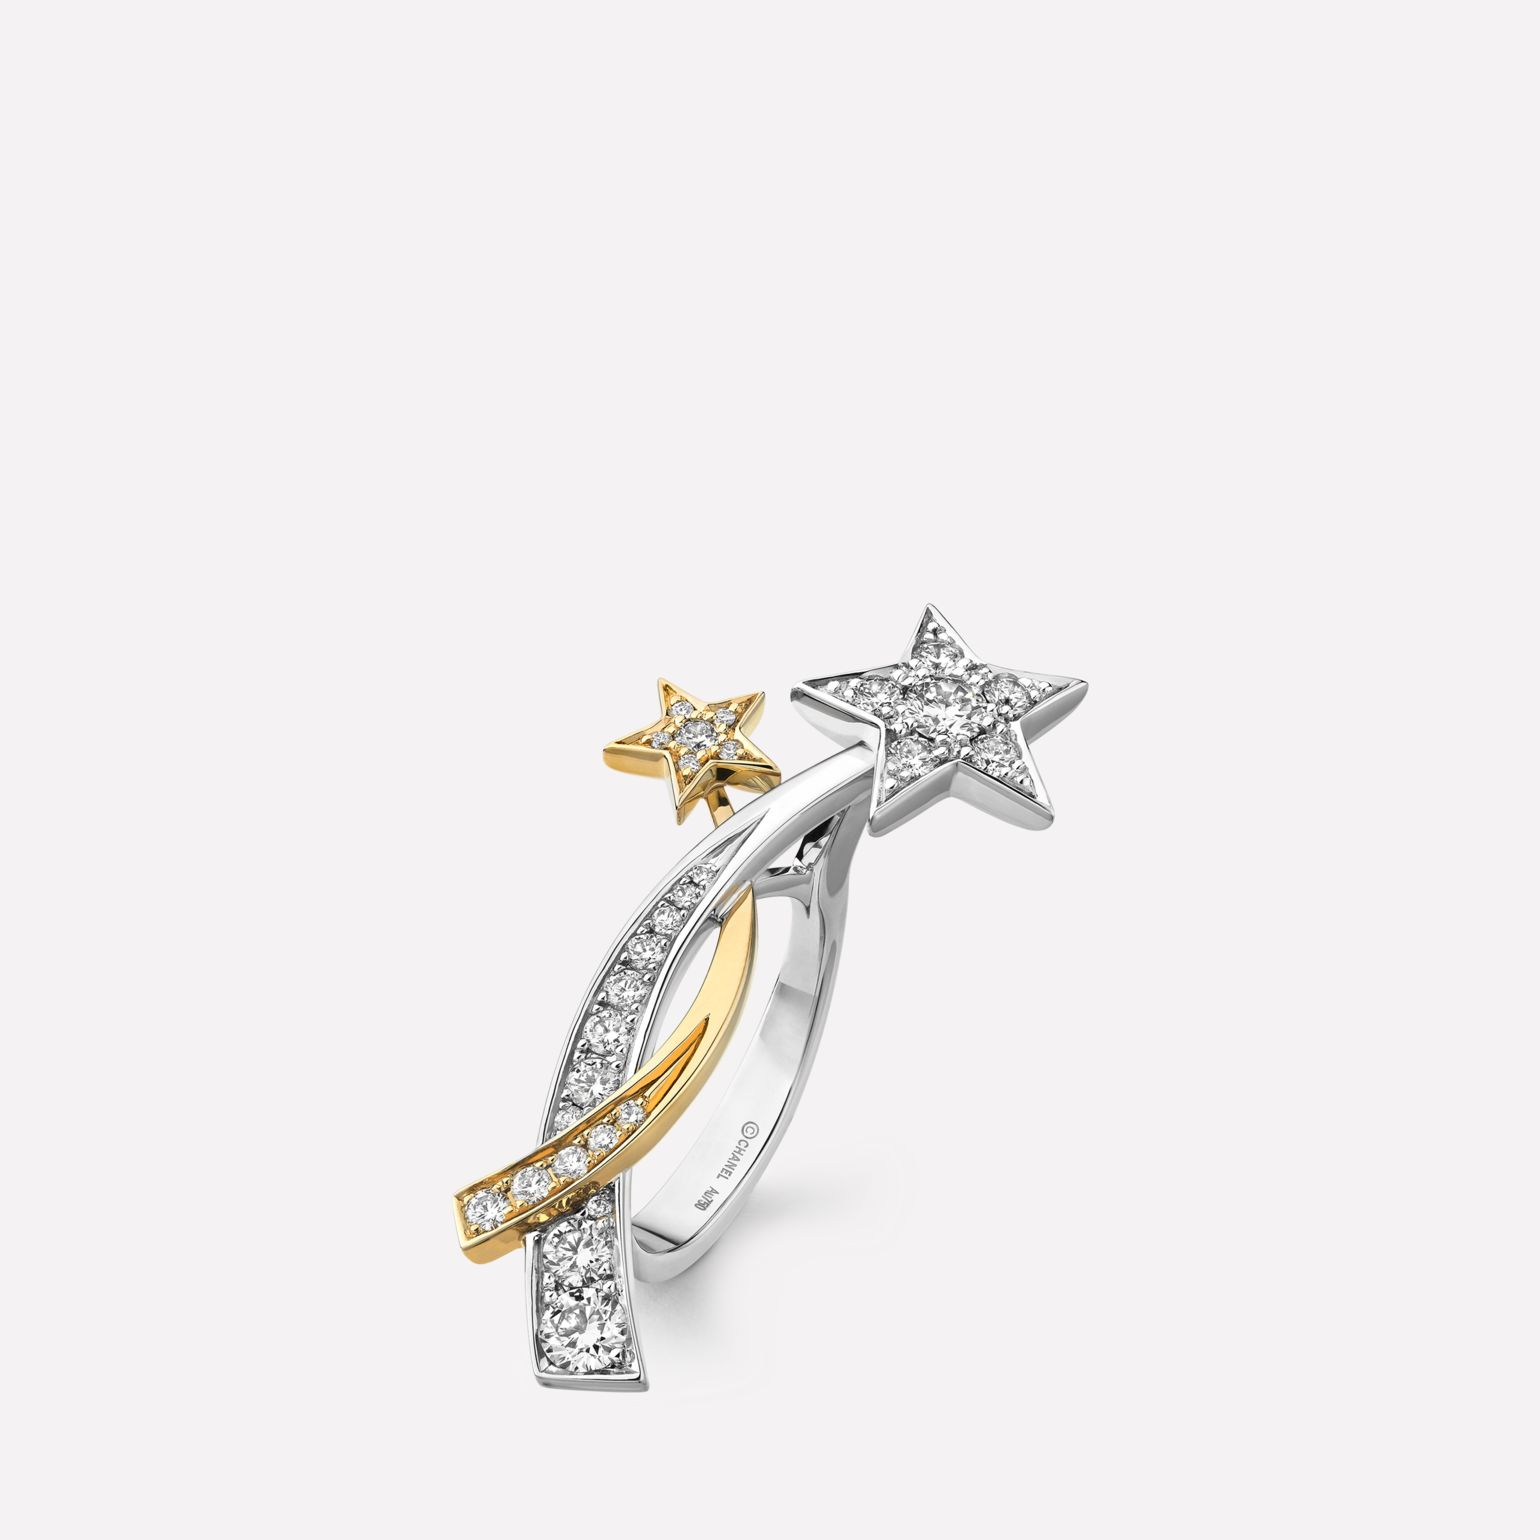 Étoile Filante ring 18K white and yellow gold, diamonds